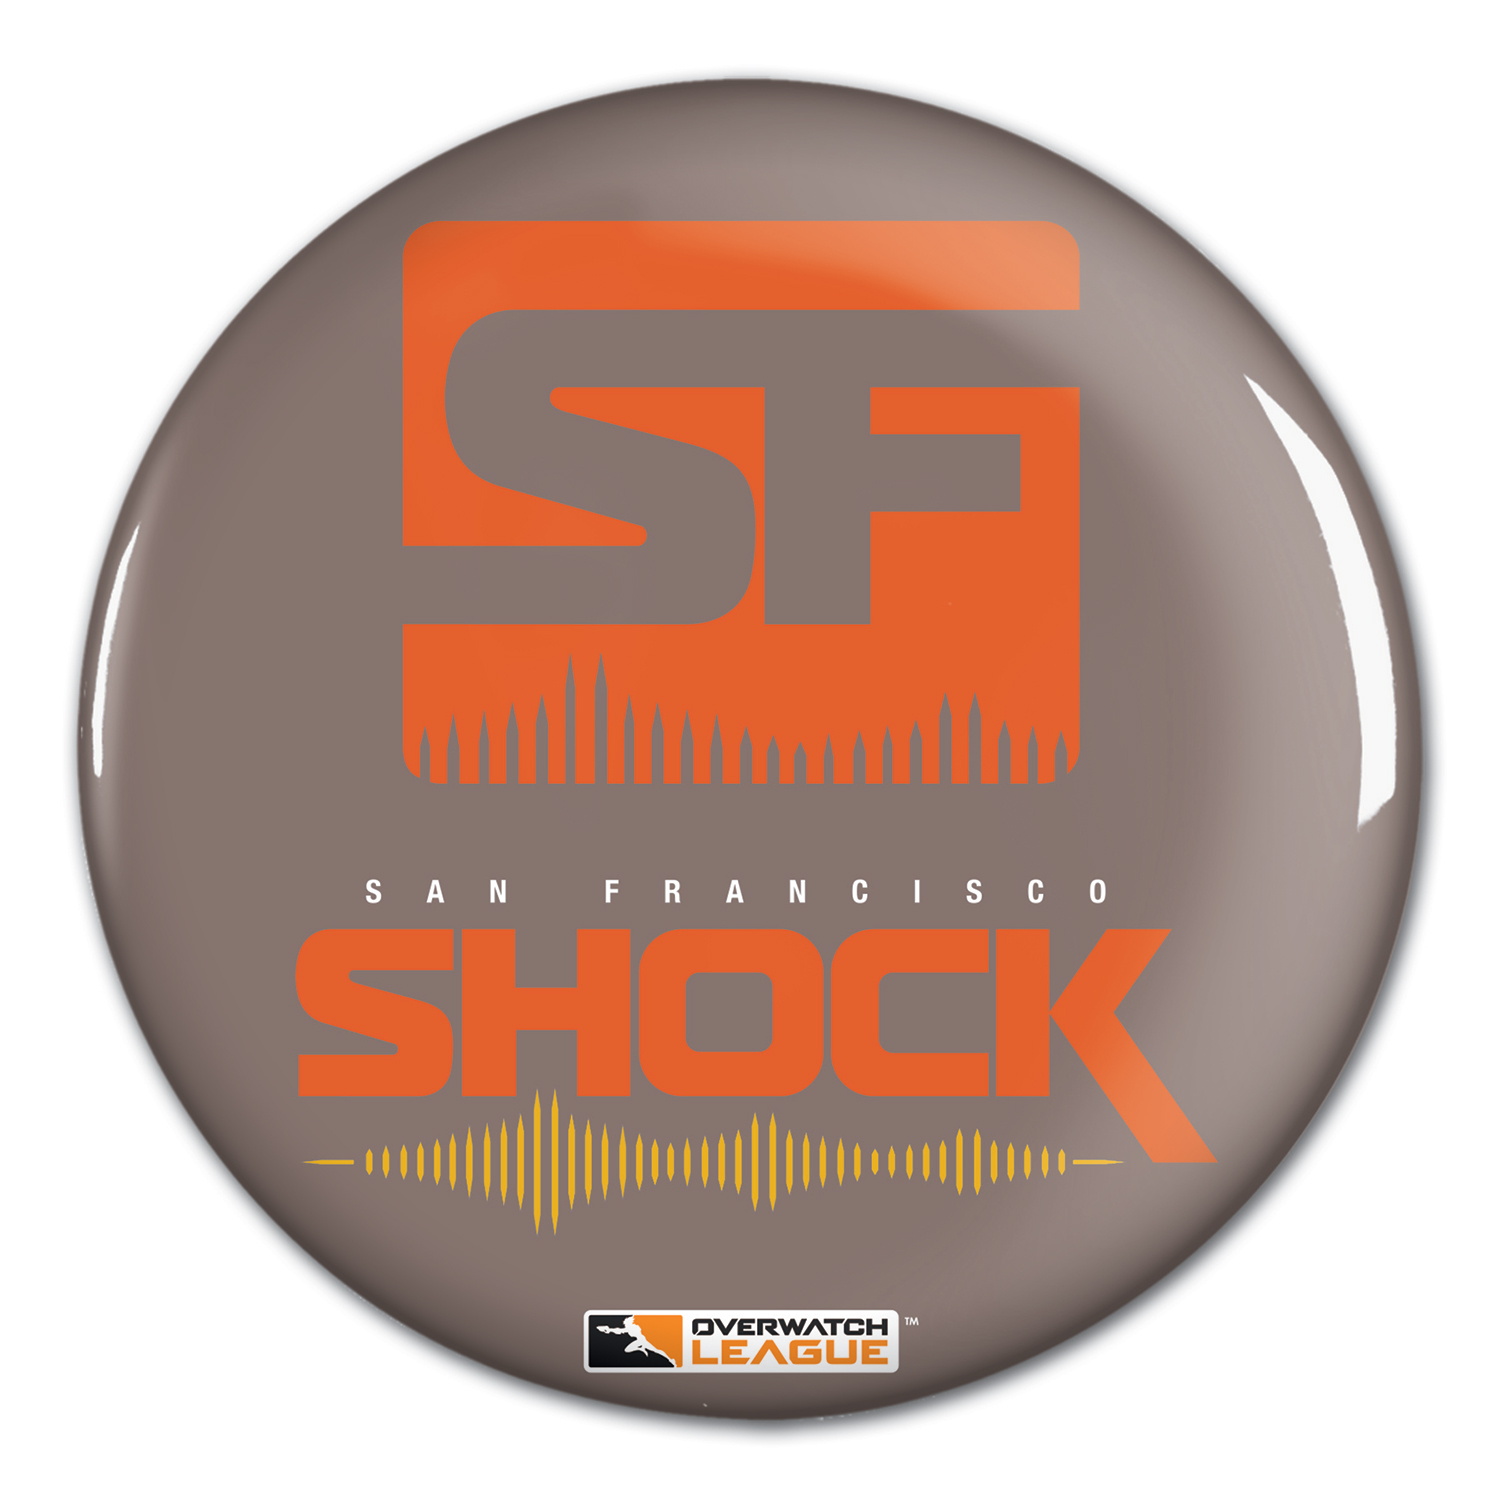 "San Francisco Shock WinCraft Team Logo 1.25"" Button Pin - No Size"